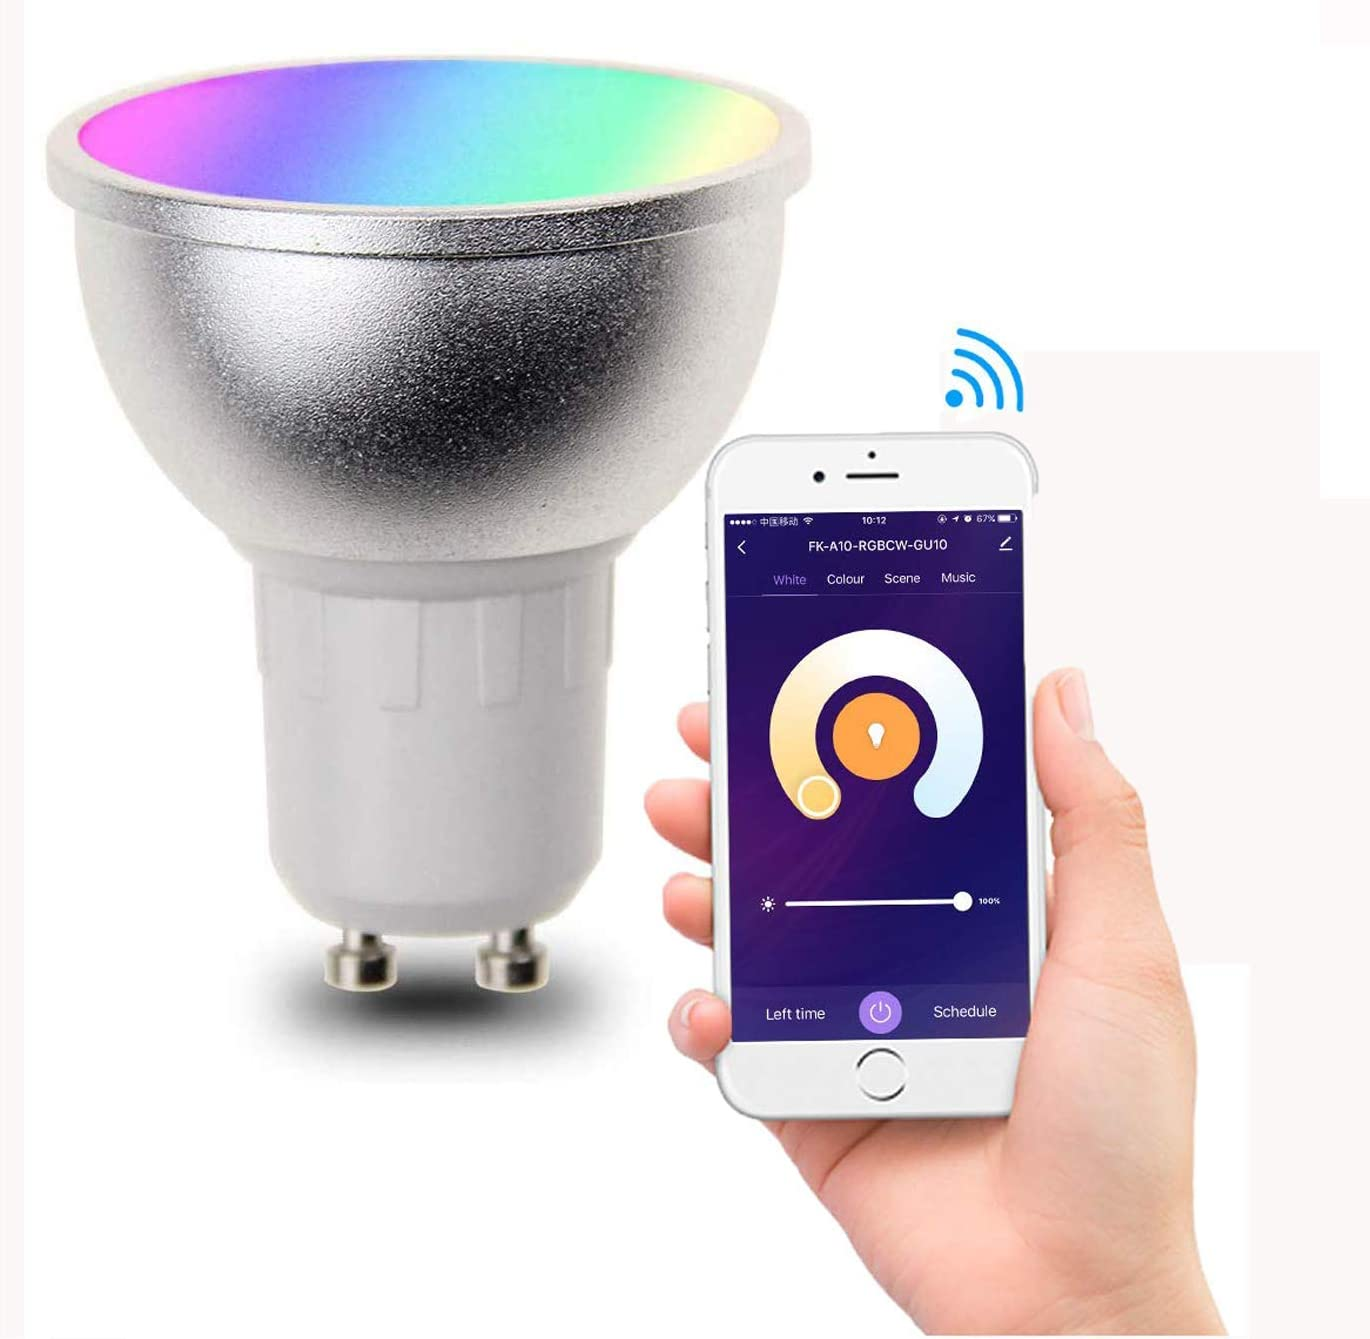 FRANKEVER Smart LED Light Bulbs WiFi Spotlight MR16 GU10 Base AC85-265V, RGBCW Dimmable Color Changing,Compatible with Alexa, Google Home, IFTTT,No Hub Required (GU10, 2 Pack)